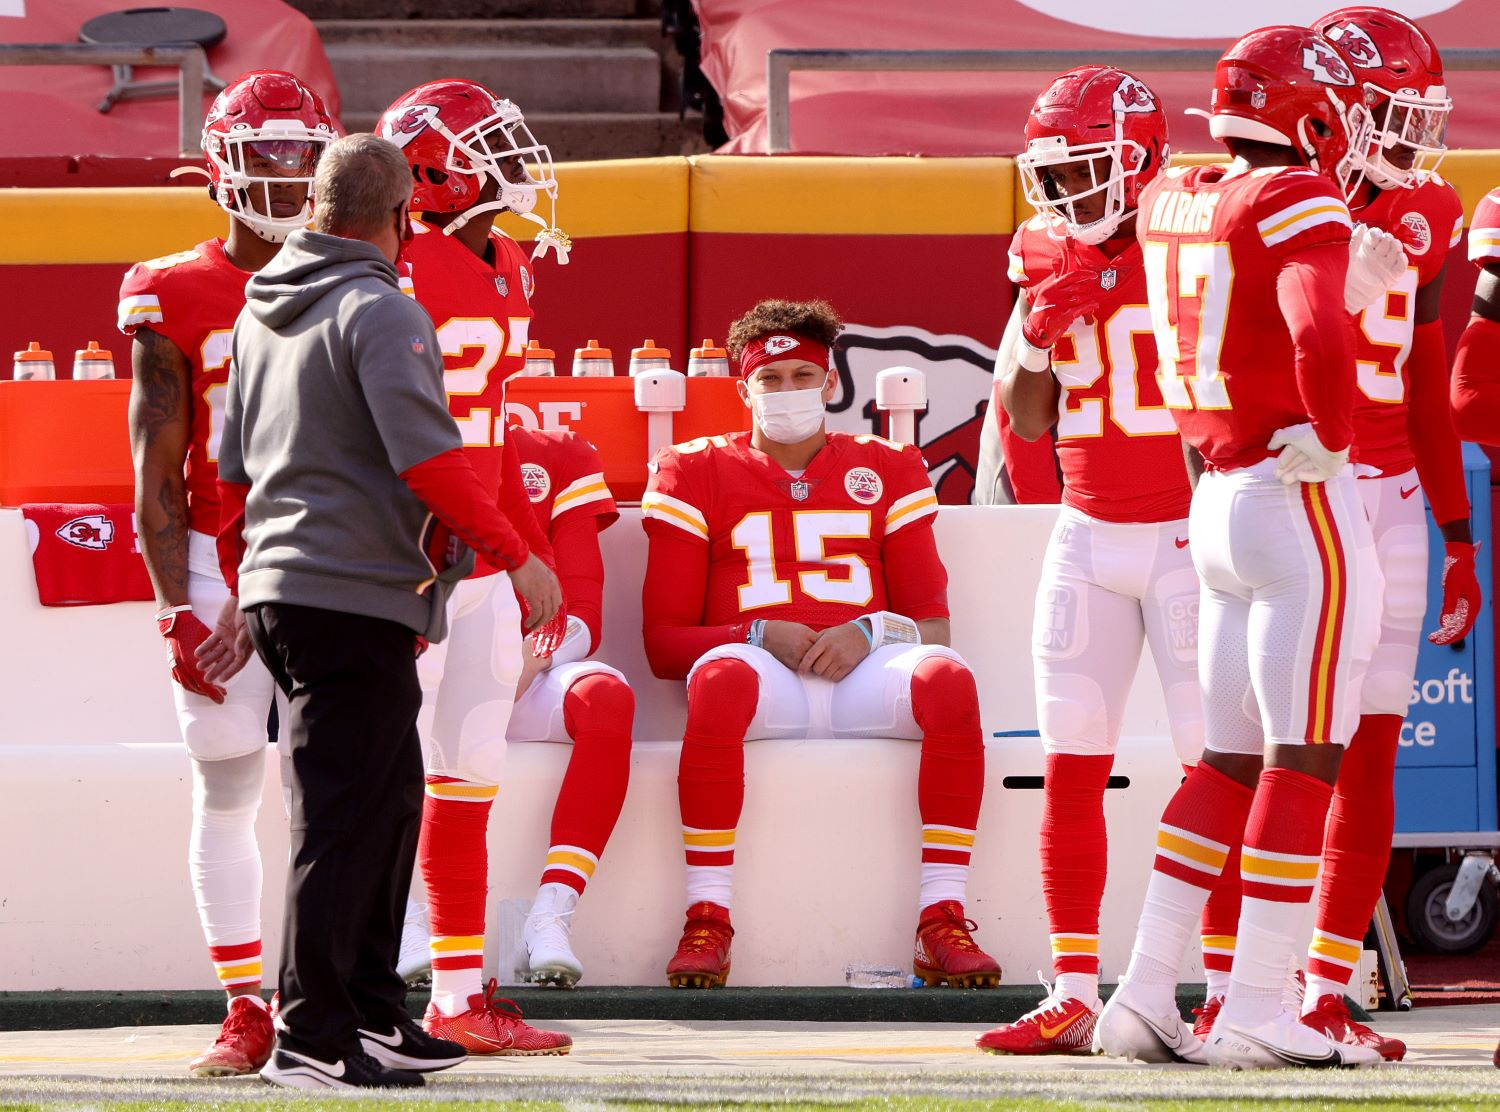 Patrick Mahomes is in a two-man race for NFL MVP, but the Kansas City Chiefs just ruined his chances at winning the award.